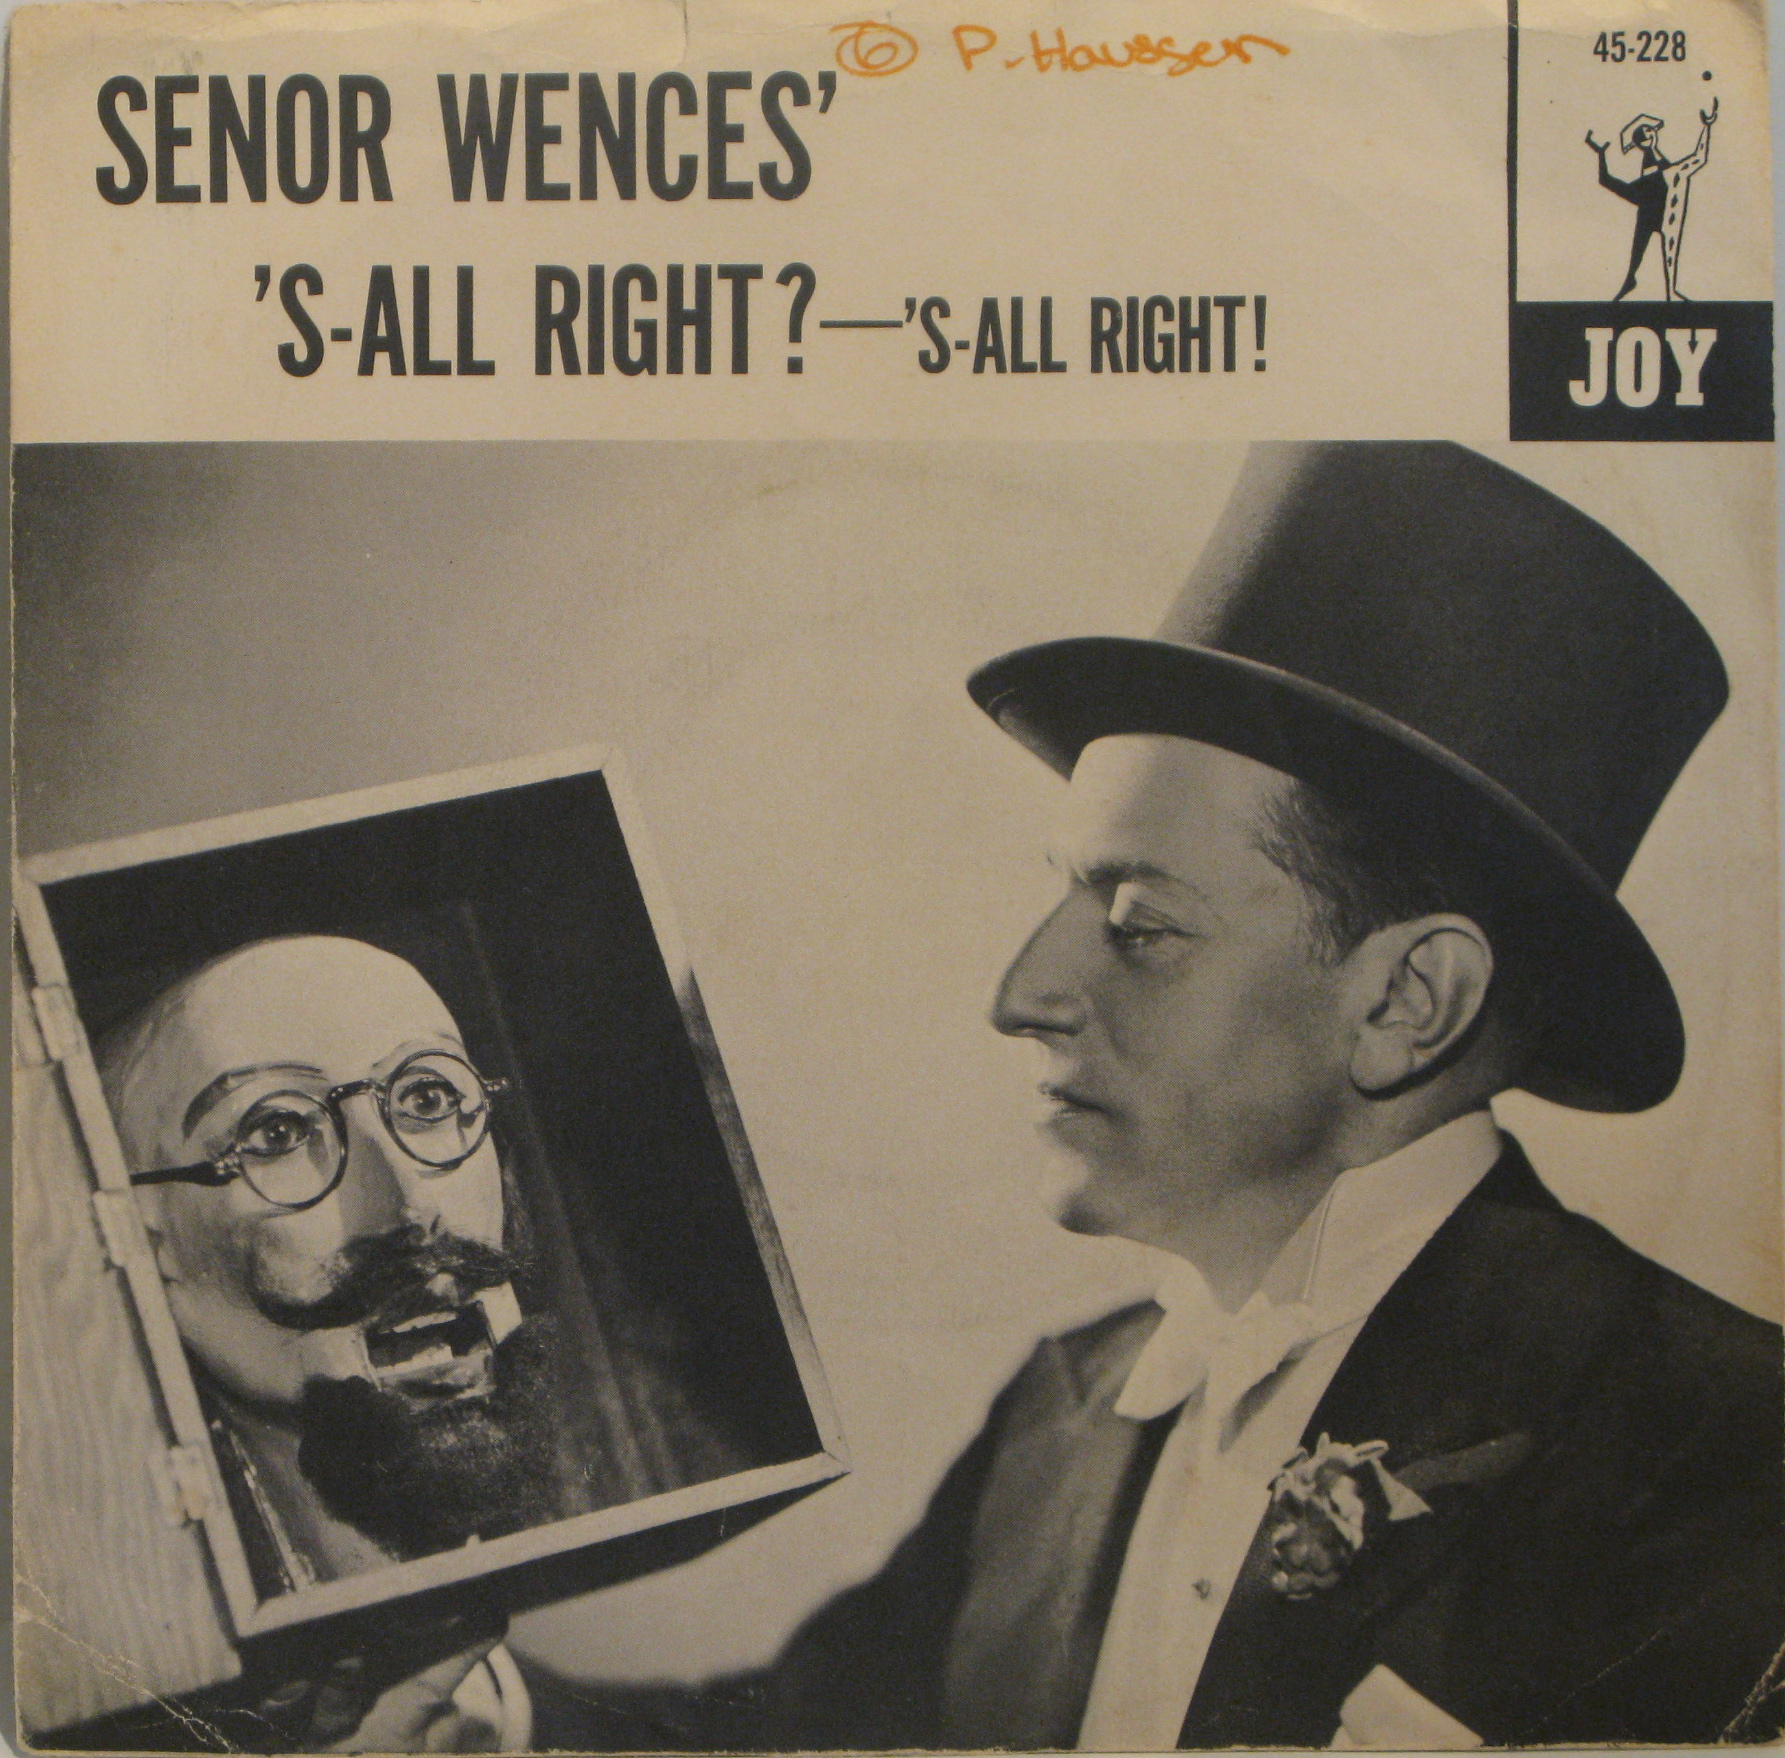 Image result for record album cover with senor wences